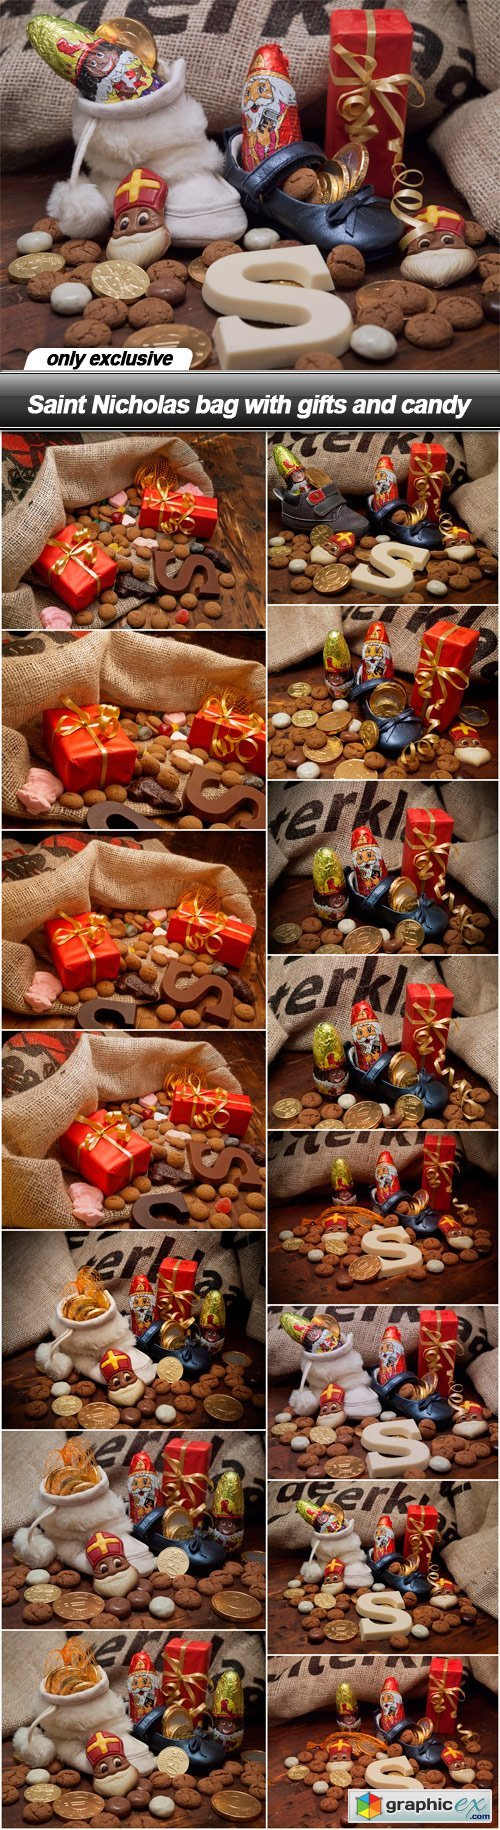 Saint Nicholas bag with gifts and candy - 15 UHQ JPEG